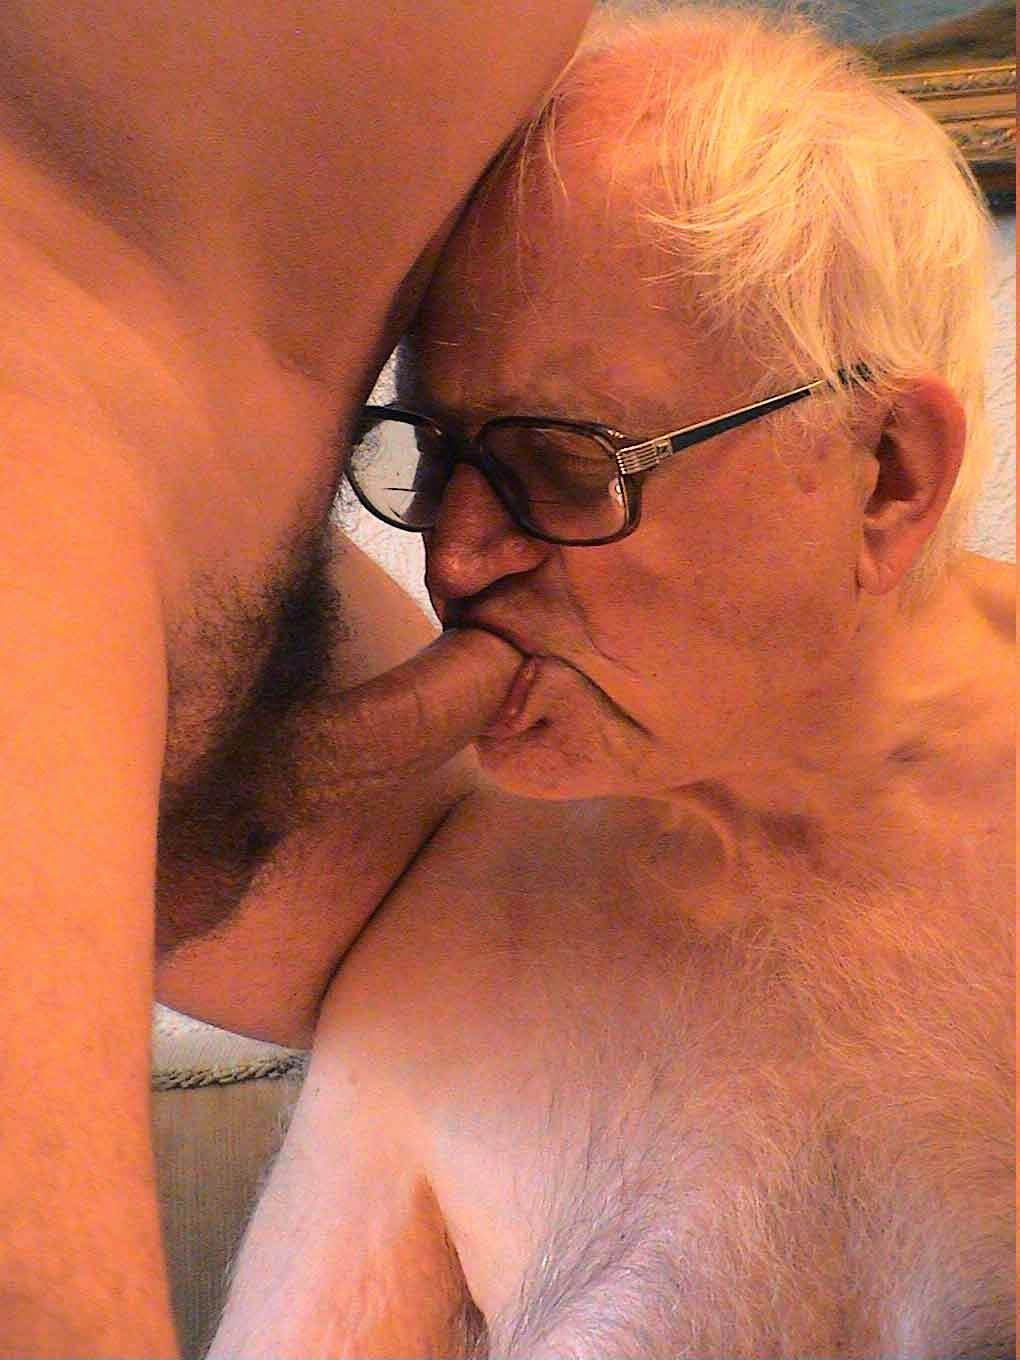 old man gay tubes